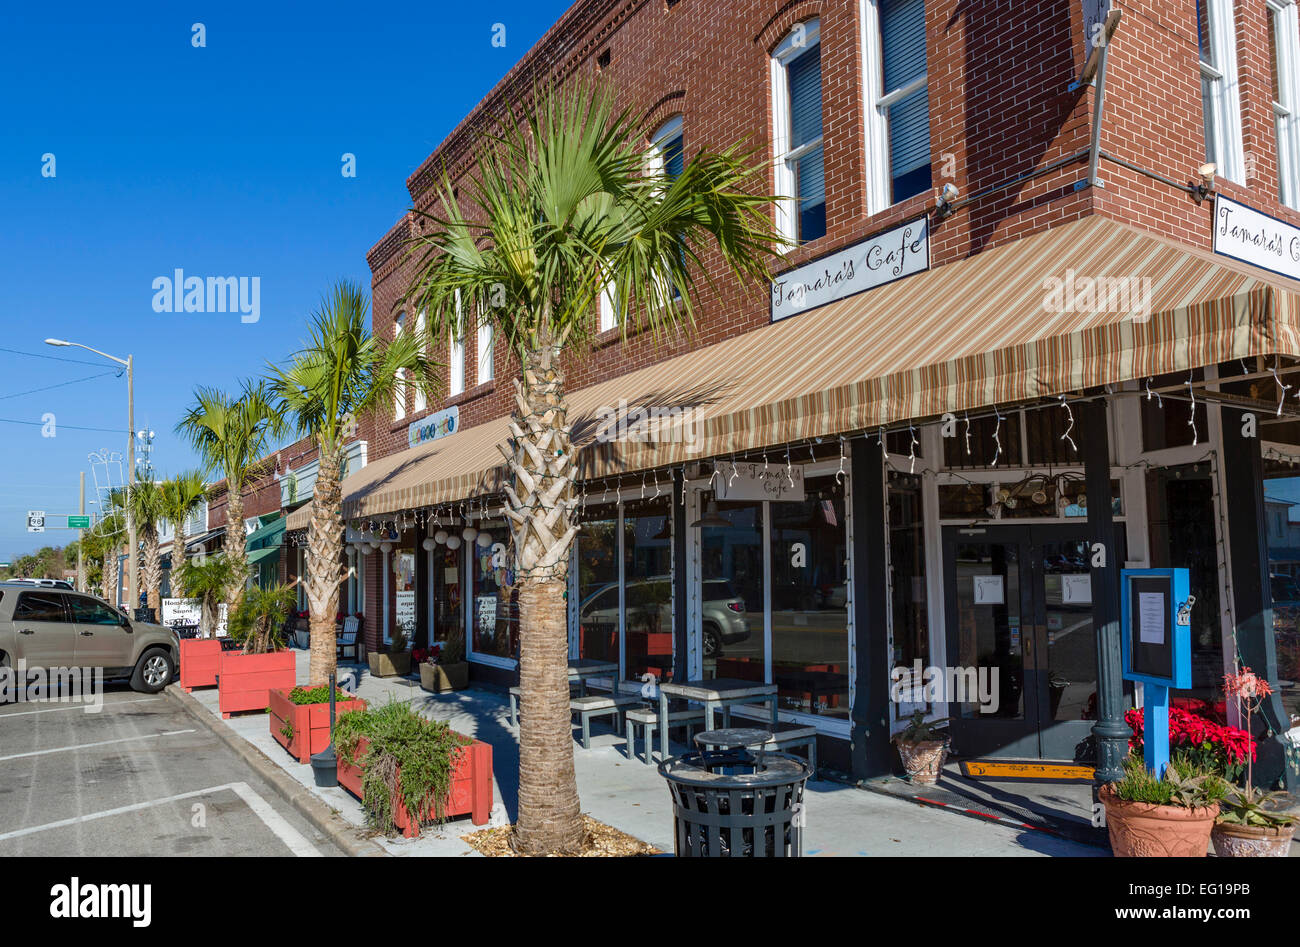 Cafe and shops on Market Street in historic downtown Apalachicola, Franklin County, Florida, USA - Stock Image